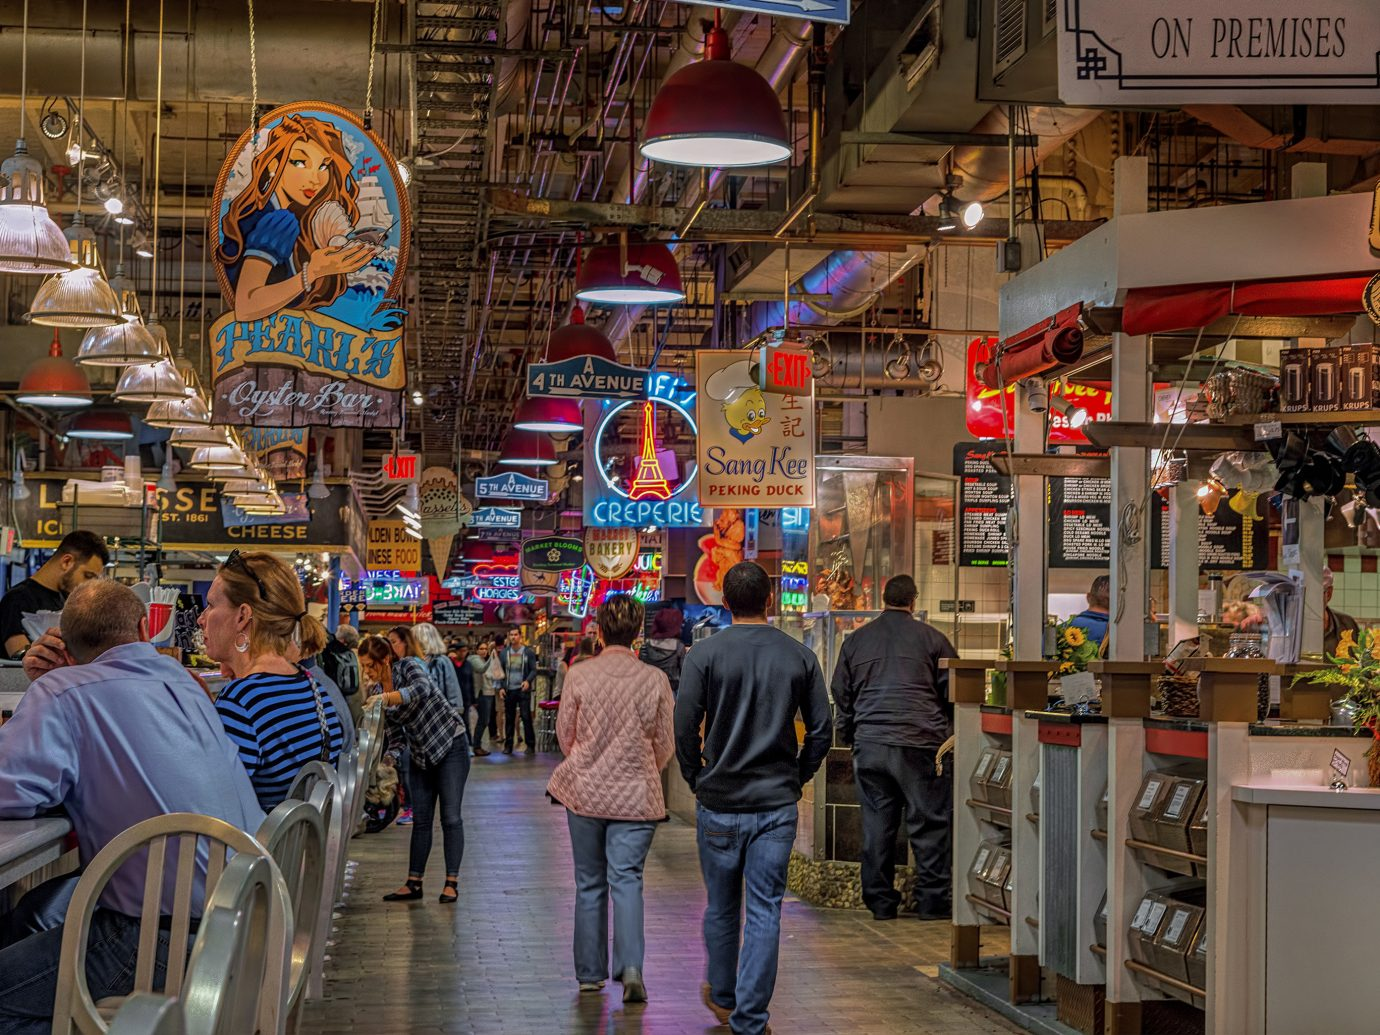 Trip Ideas Weekend Getaways marketplace person City market public space road human settlement urban area bazaar vendor scene street retail shopping infrastructure grocery store people store travel stall Shop